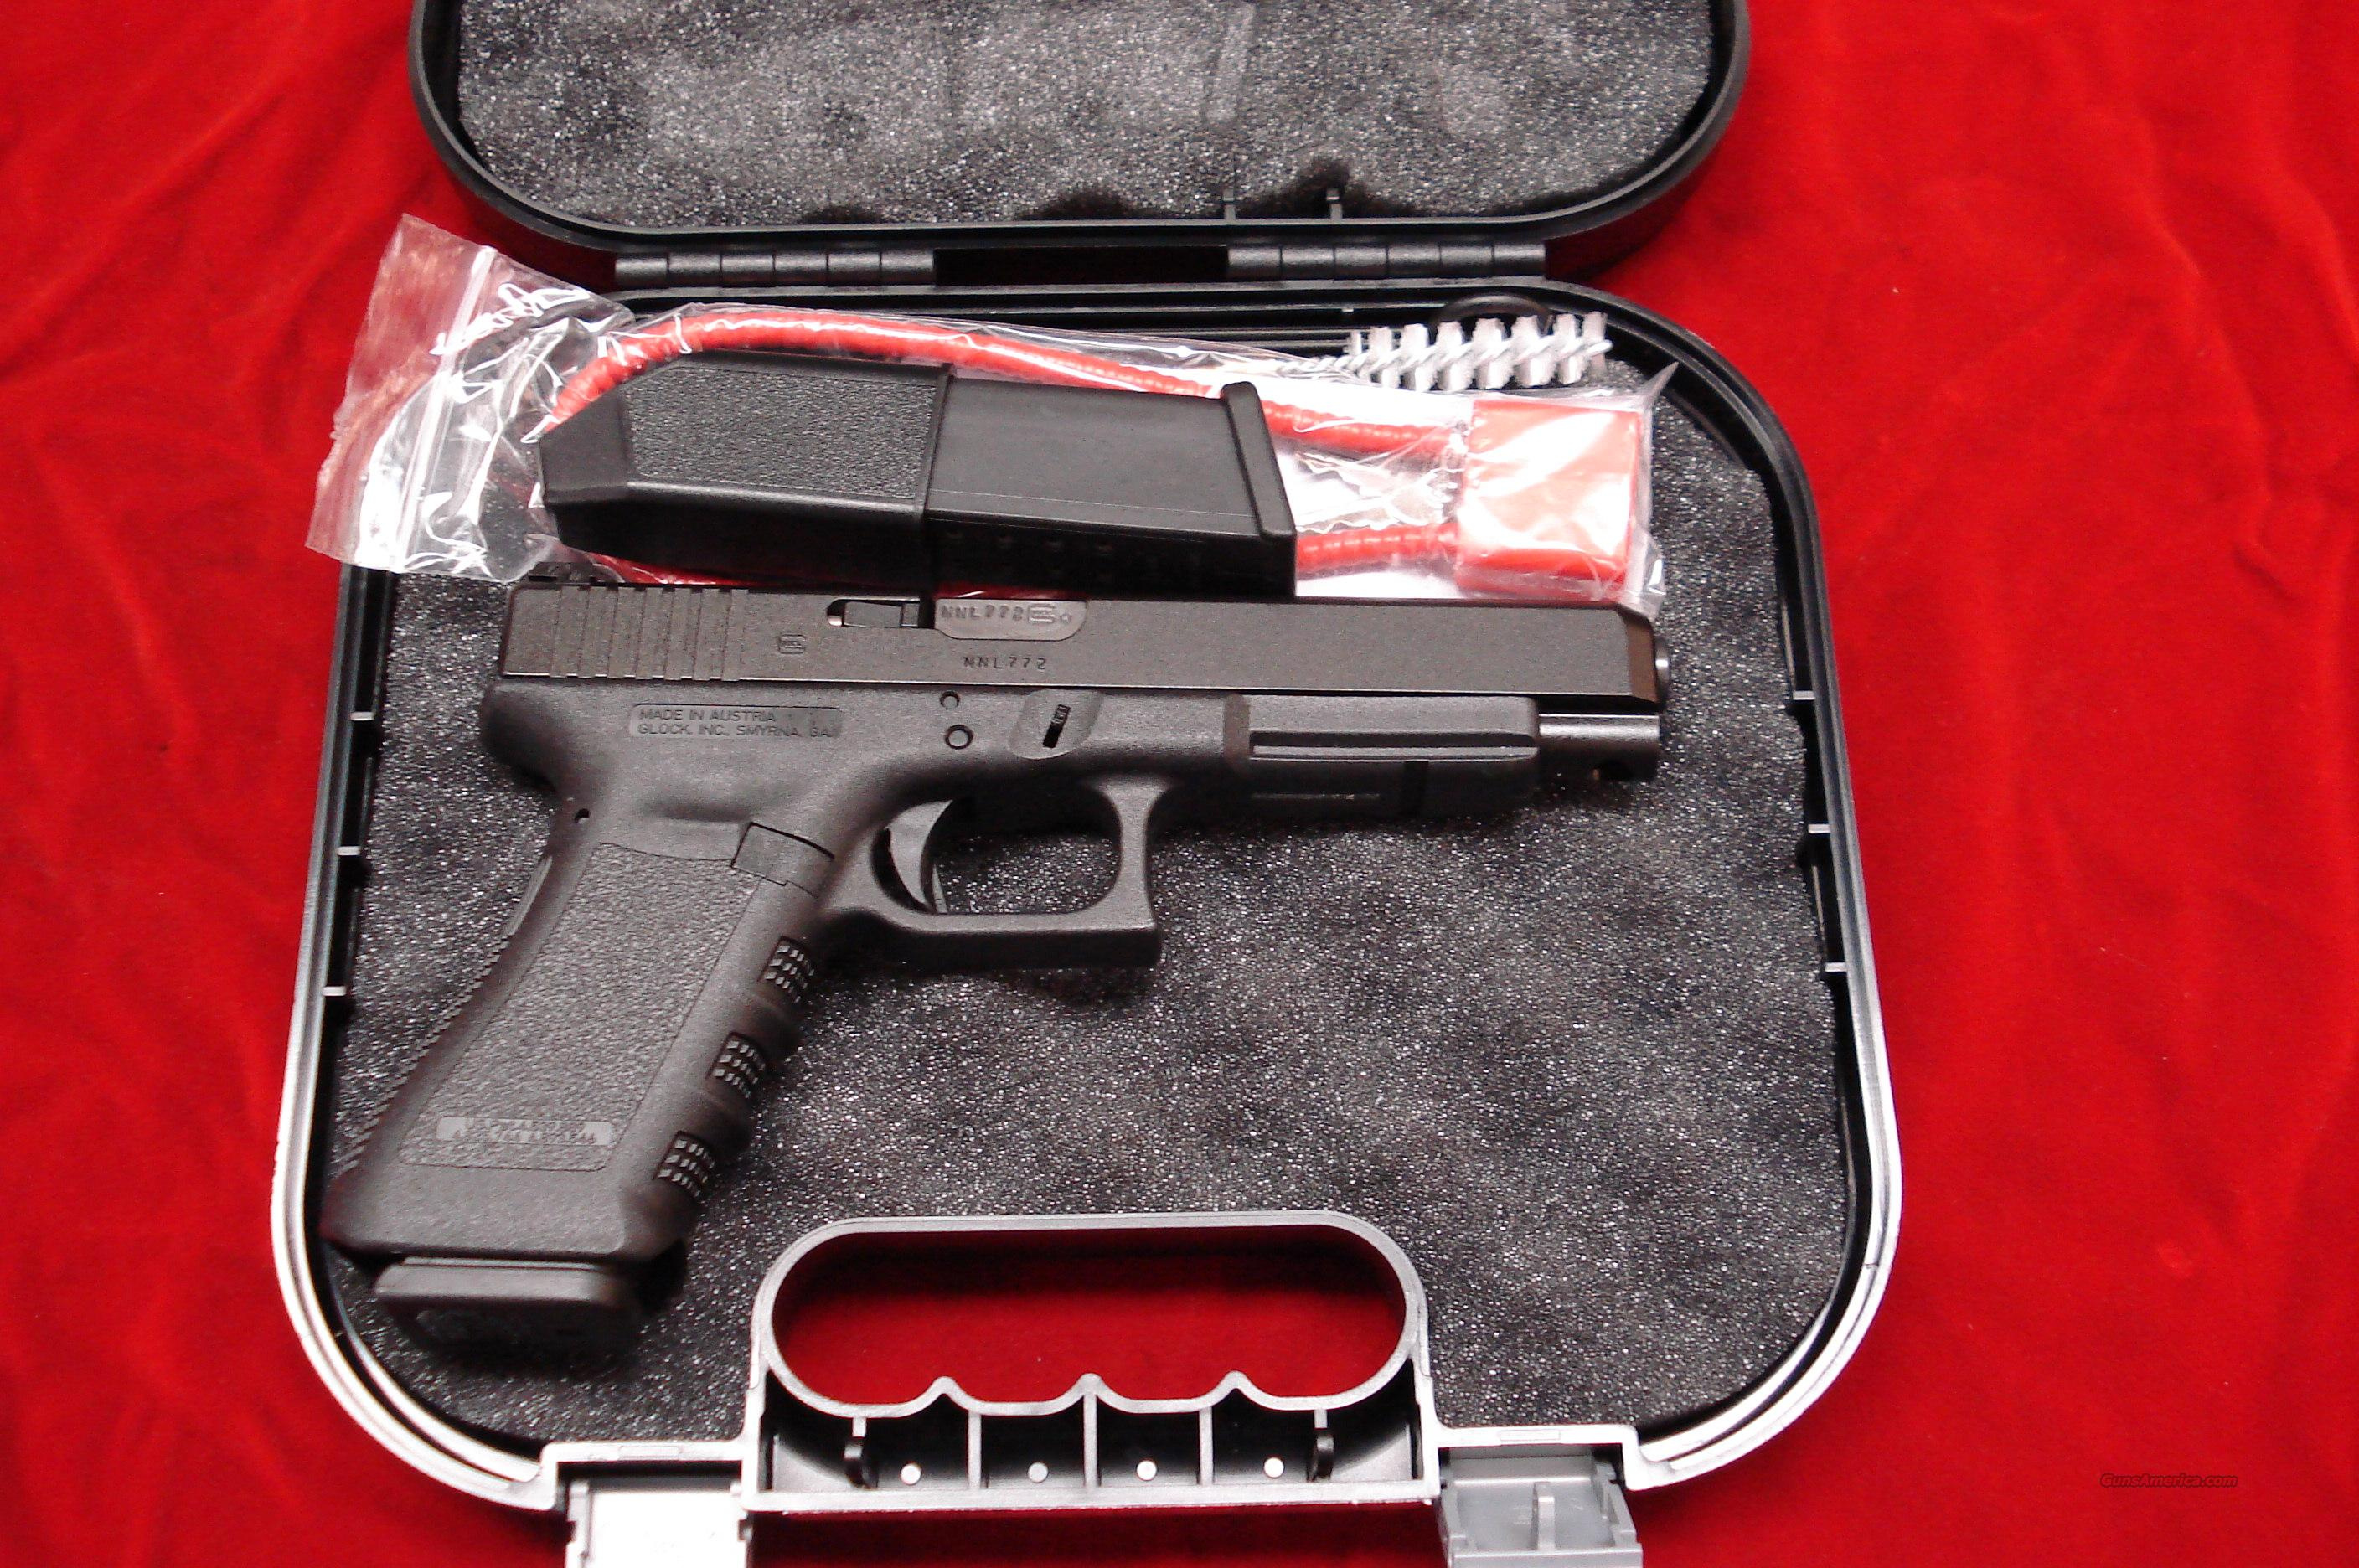 GLOCK MODEL 34 9MM TACTICAL/PRACTICAL NEW   Guns > Pistols > Glock Pistols > 17